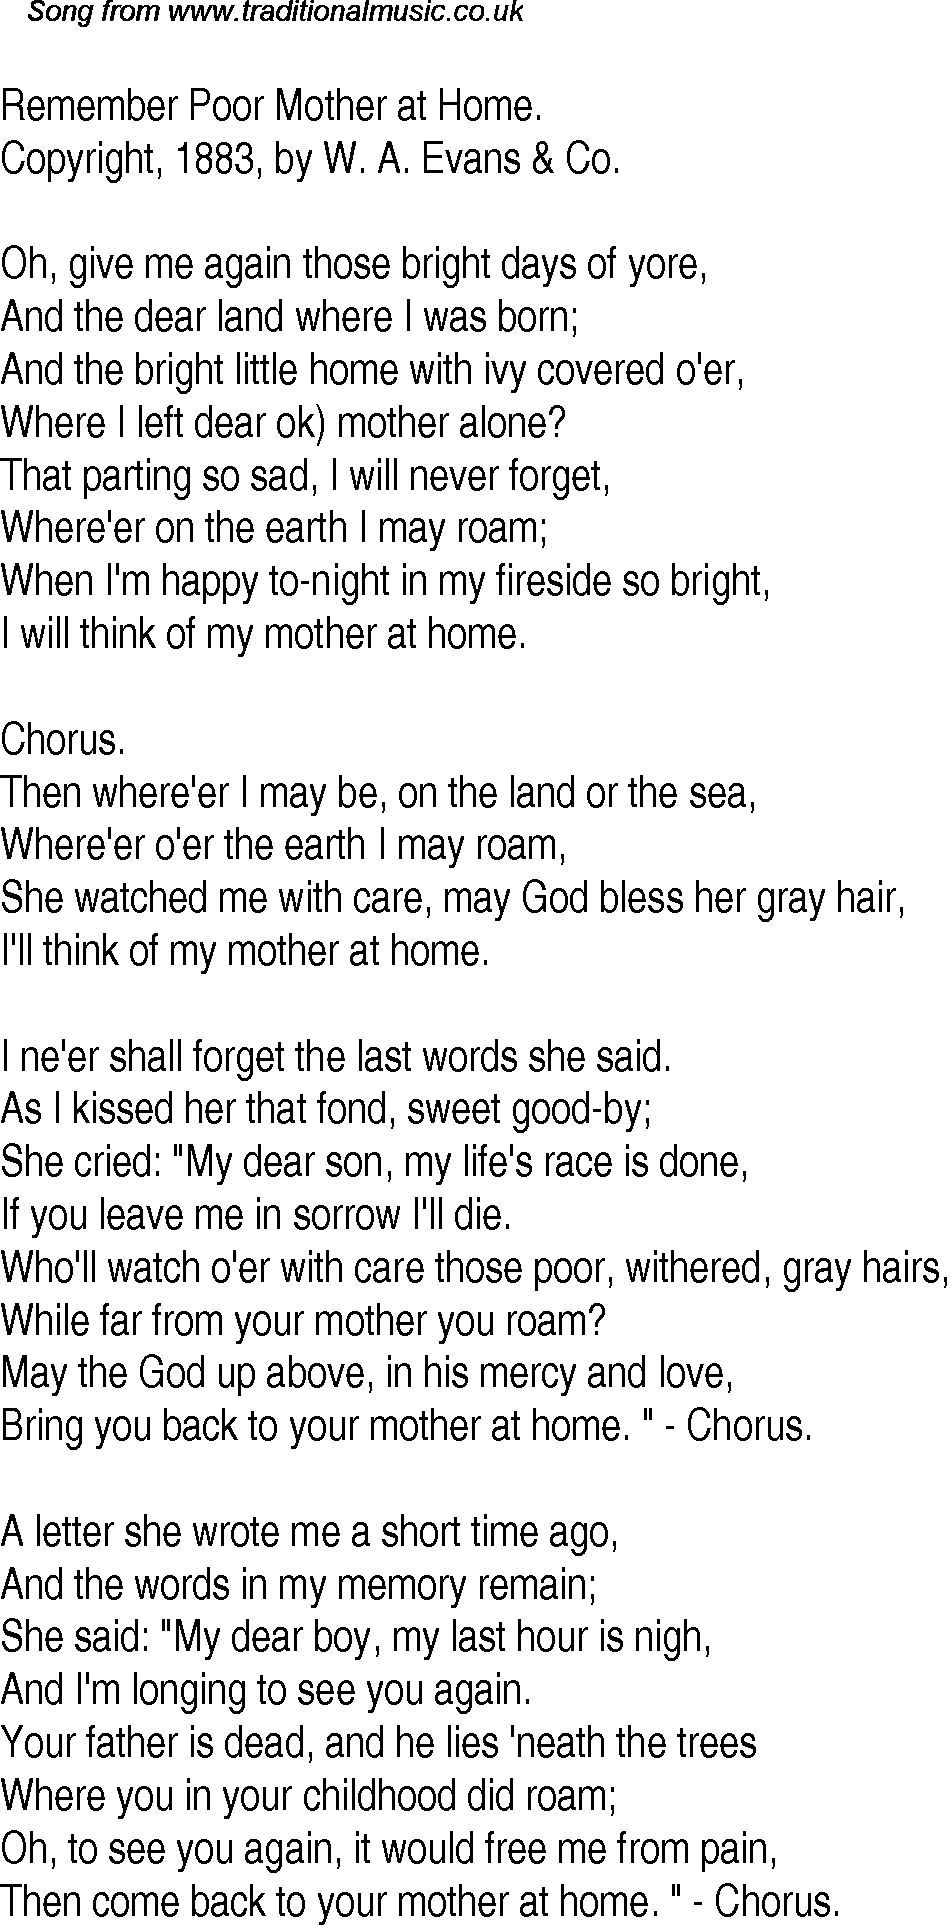 Old time song lyrics for 11 remember poor mother at home download music lyrics as png graphic file publicscrutiny Images